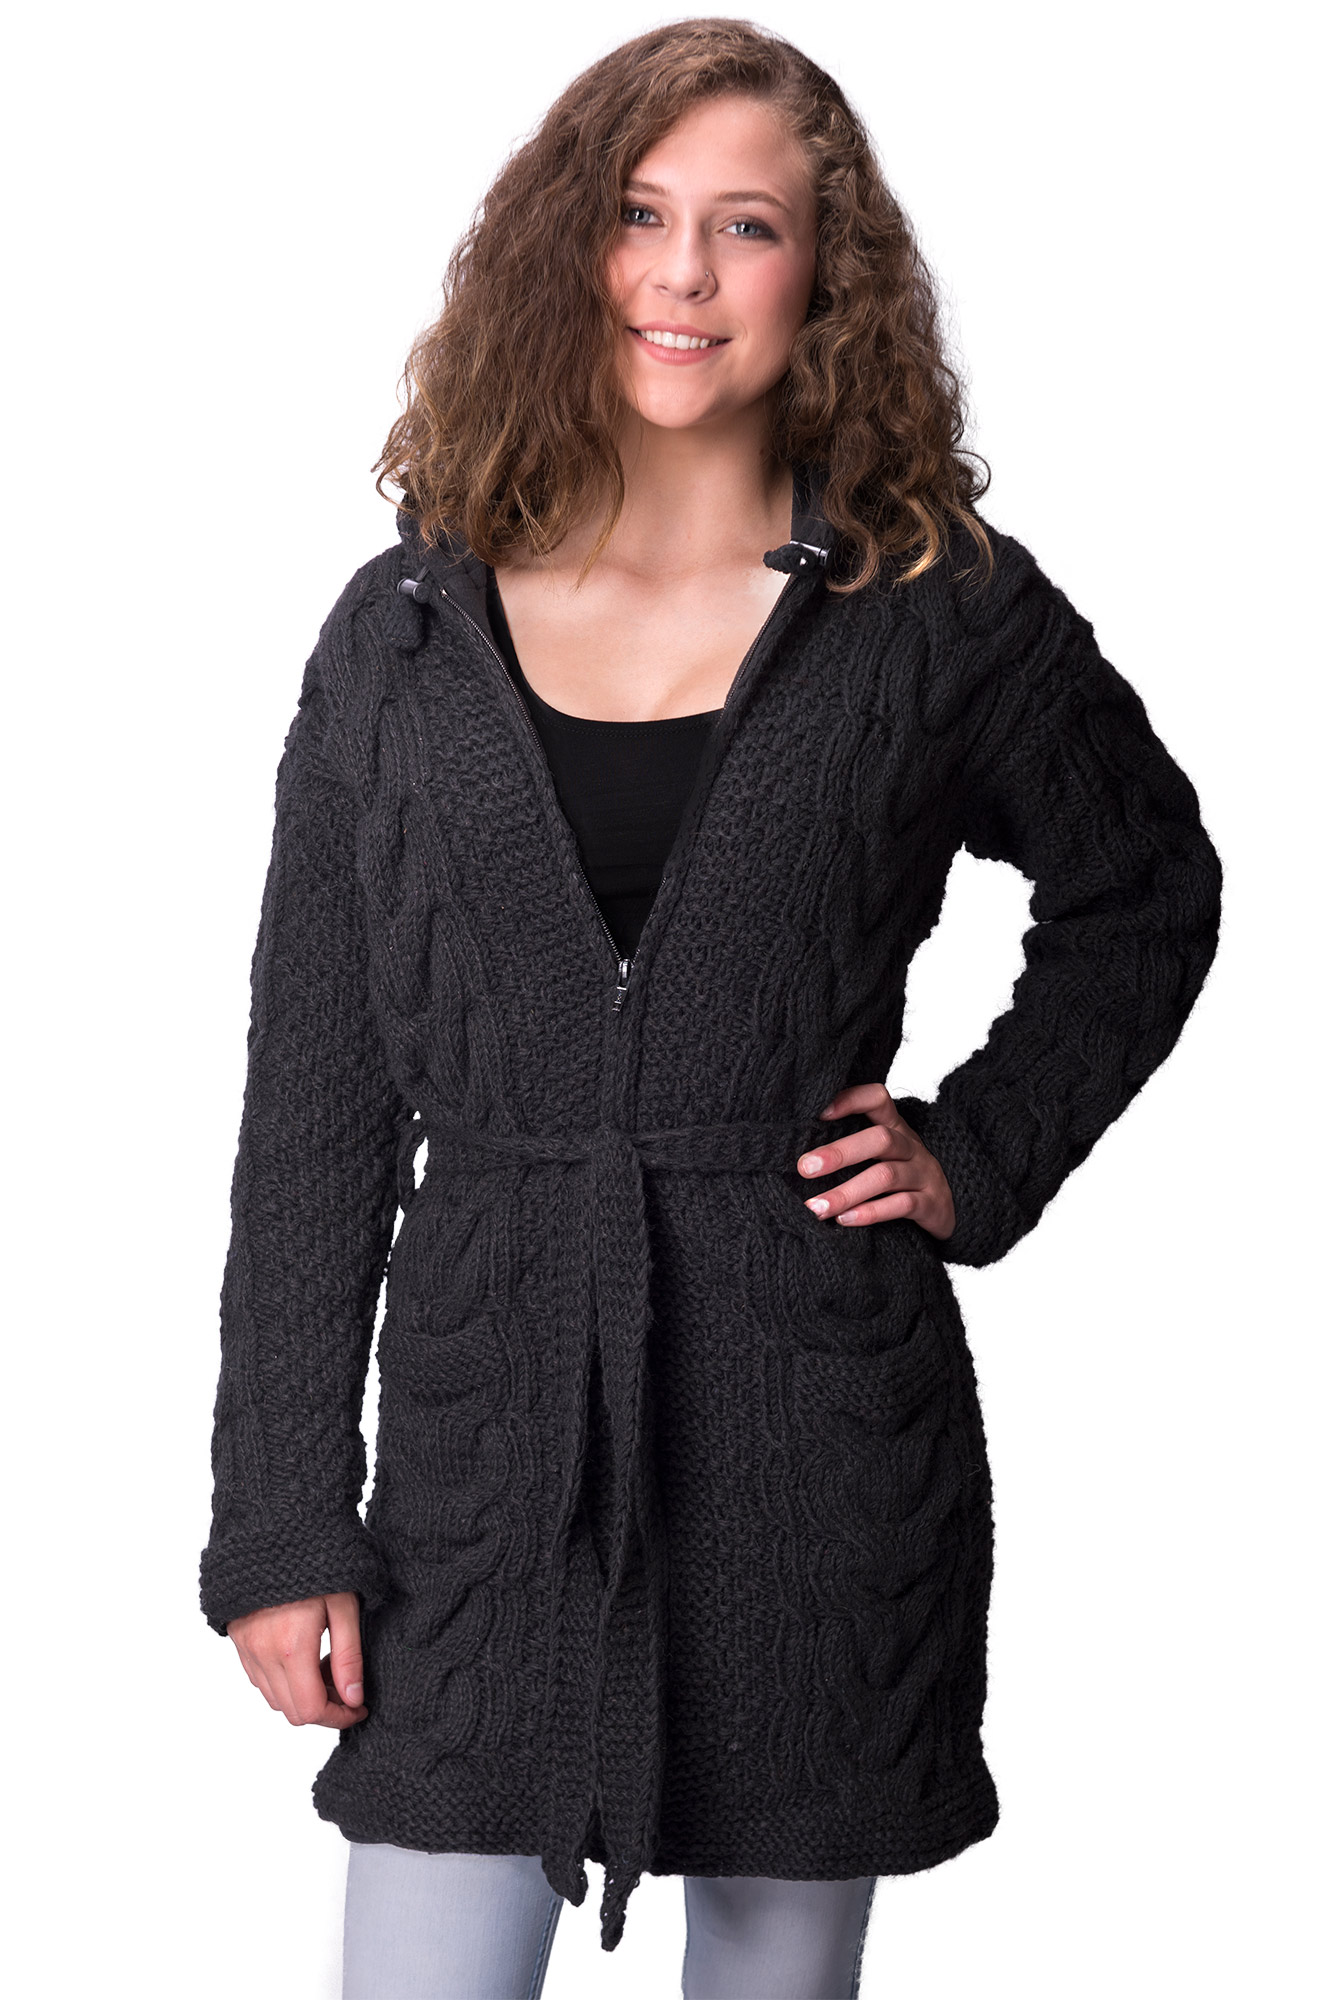 Wool Cable Knit Himalayan Mountain Jacket – Full Length Black